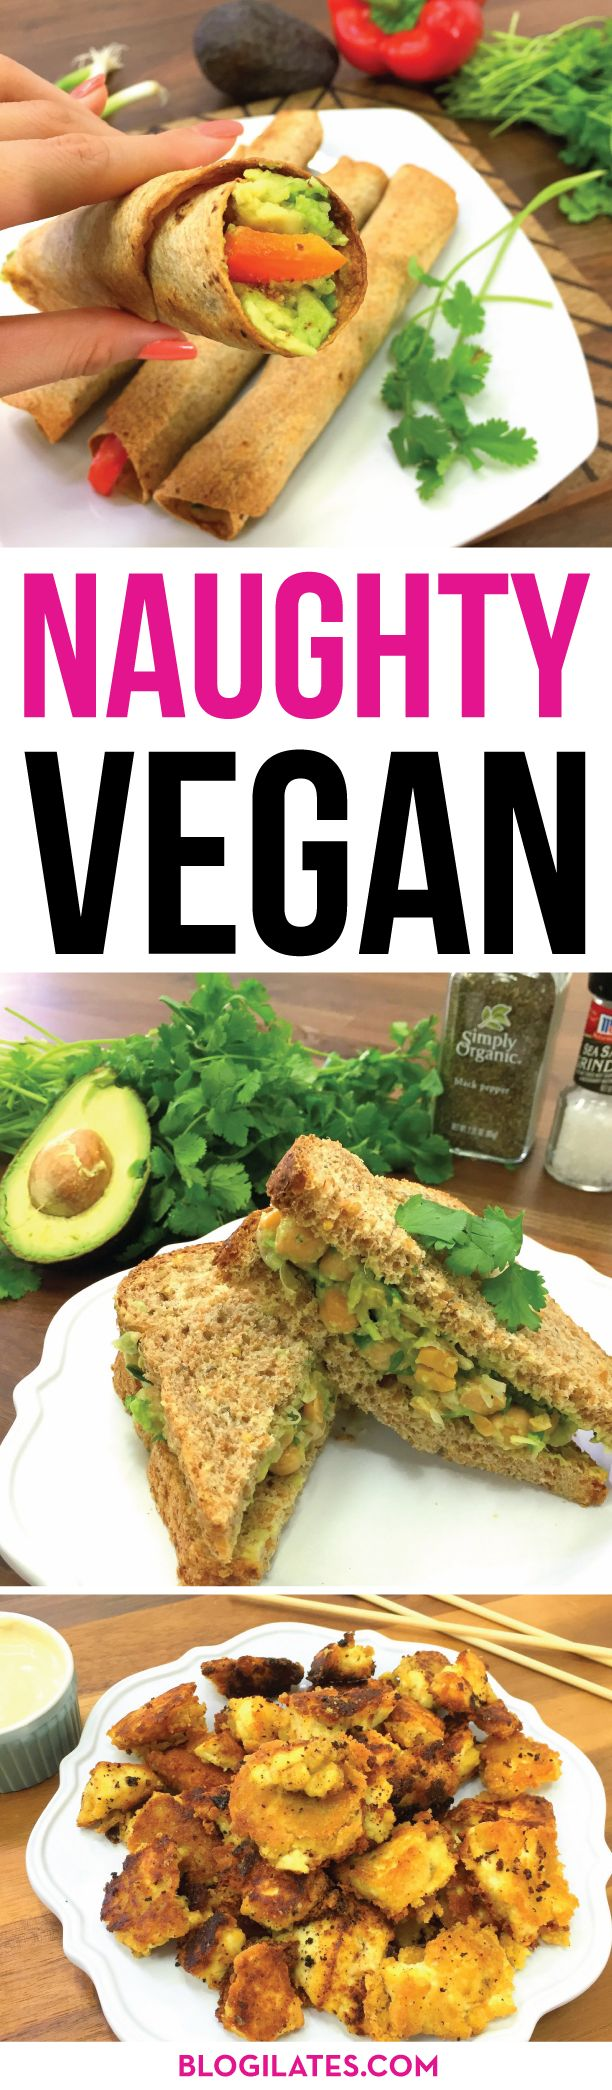 Eating meatless can be delicious! Learn how to make vegan taquitos, a chick'n club sandwich, and popcorn chick'n (or tofu nuggets), Open your mind and open your taste buds to a whole new world of cooking!